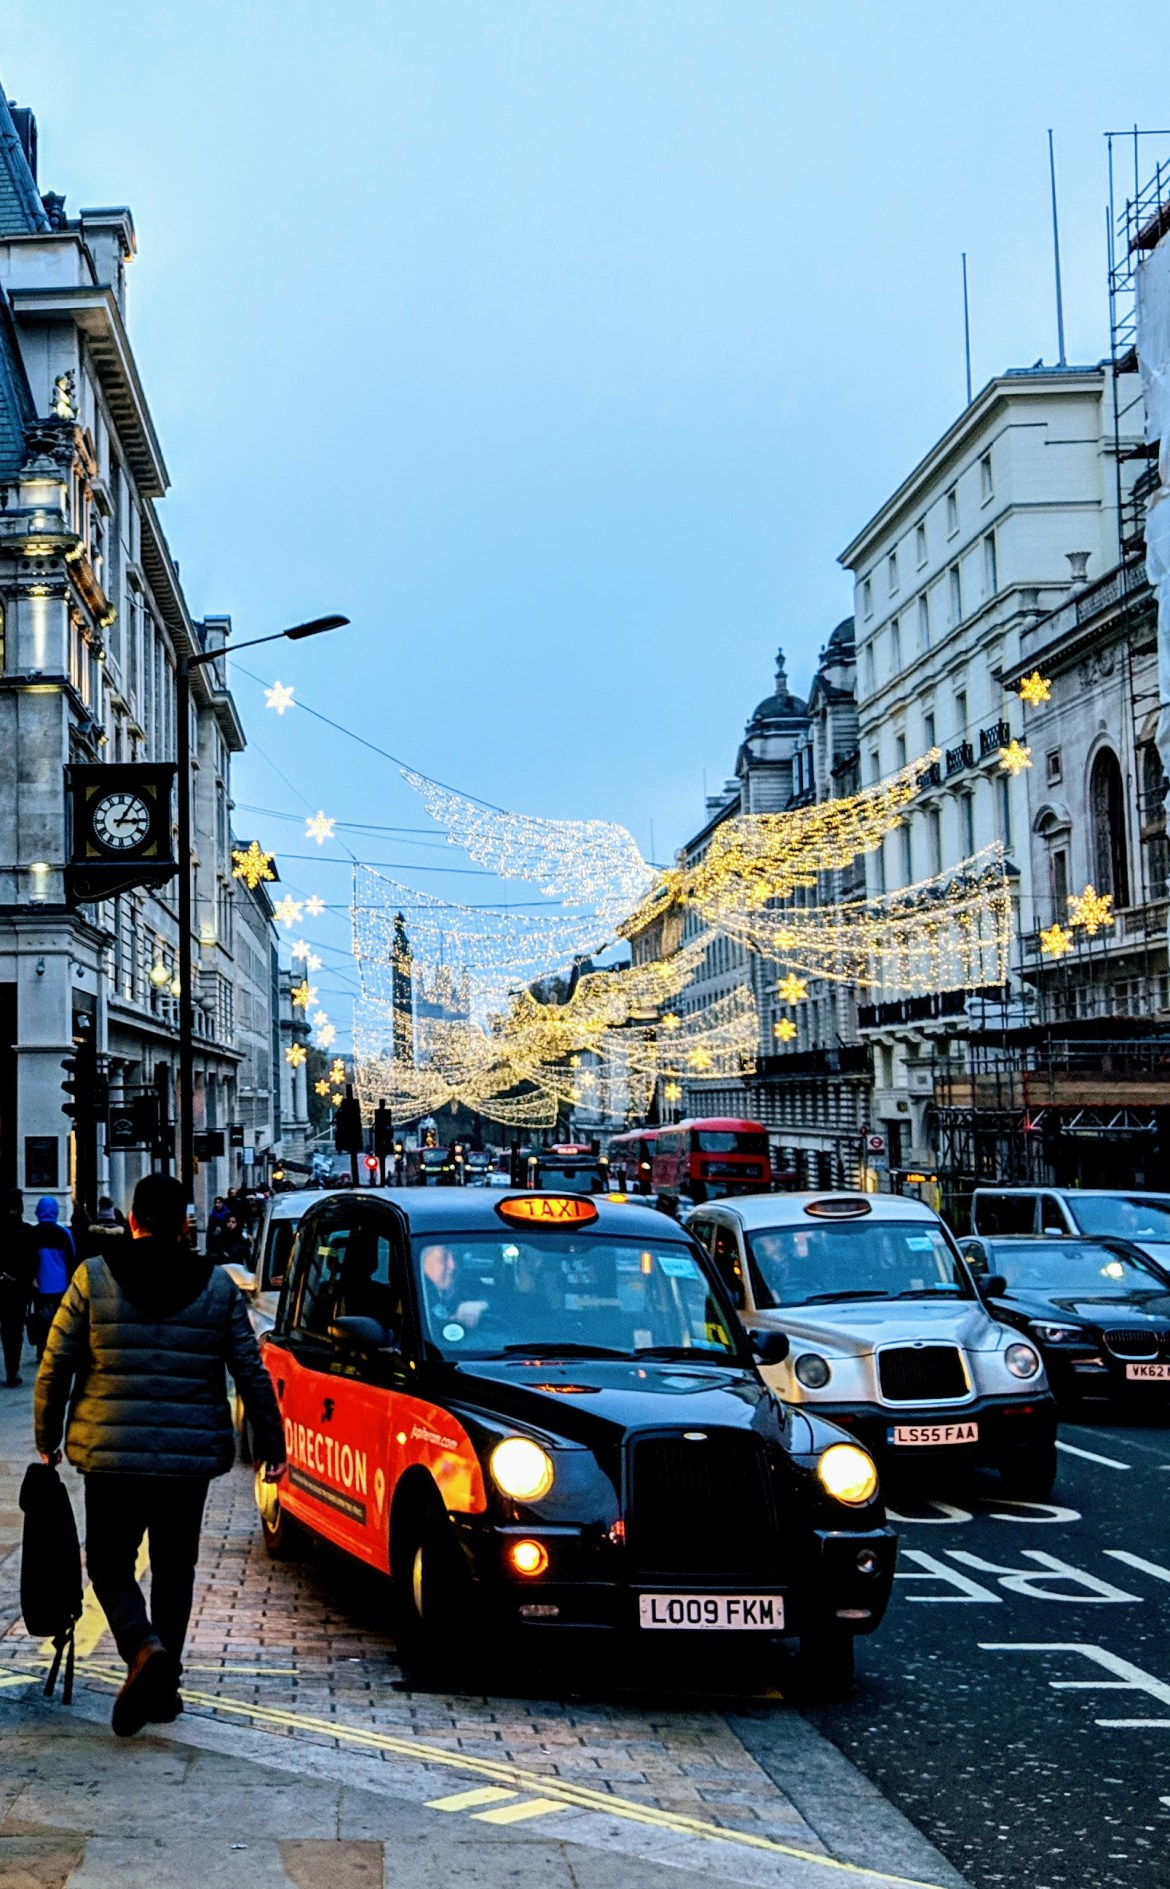 What to do during the festive season in London